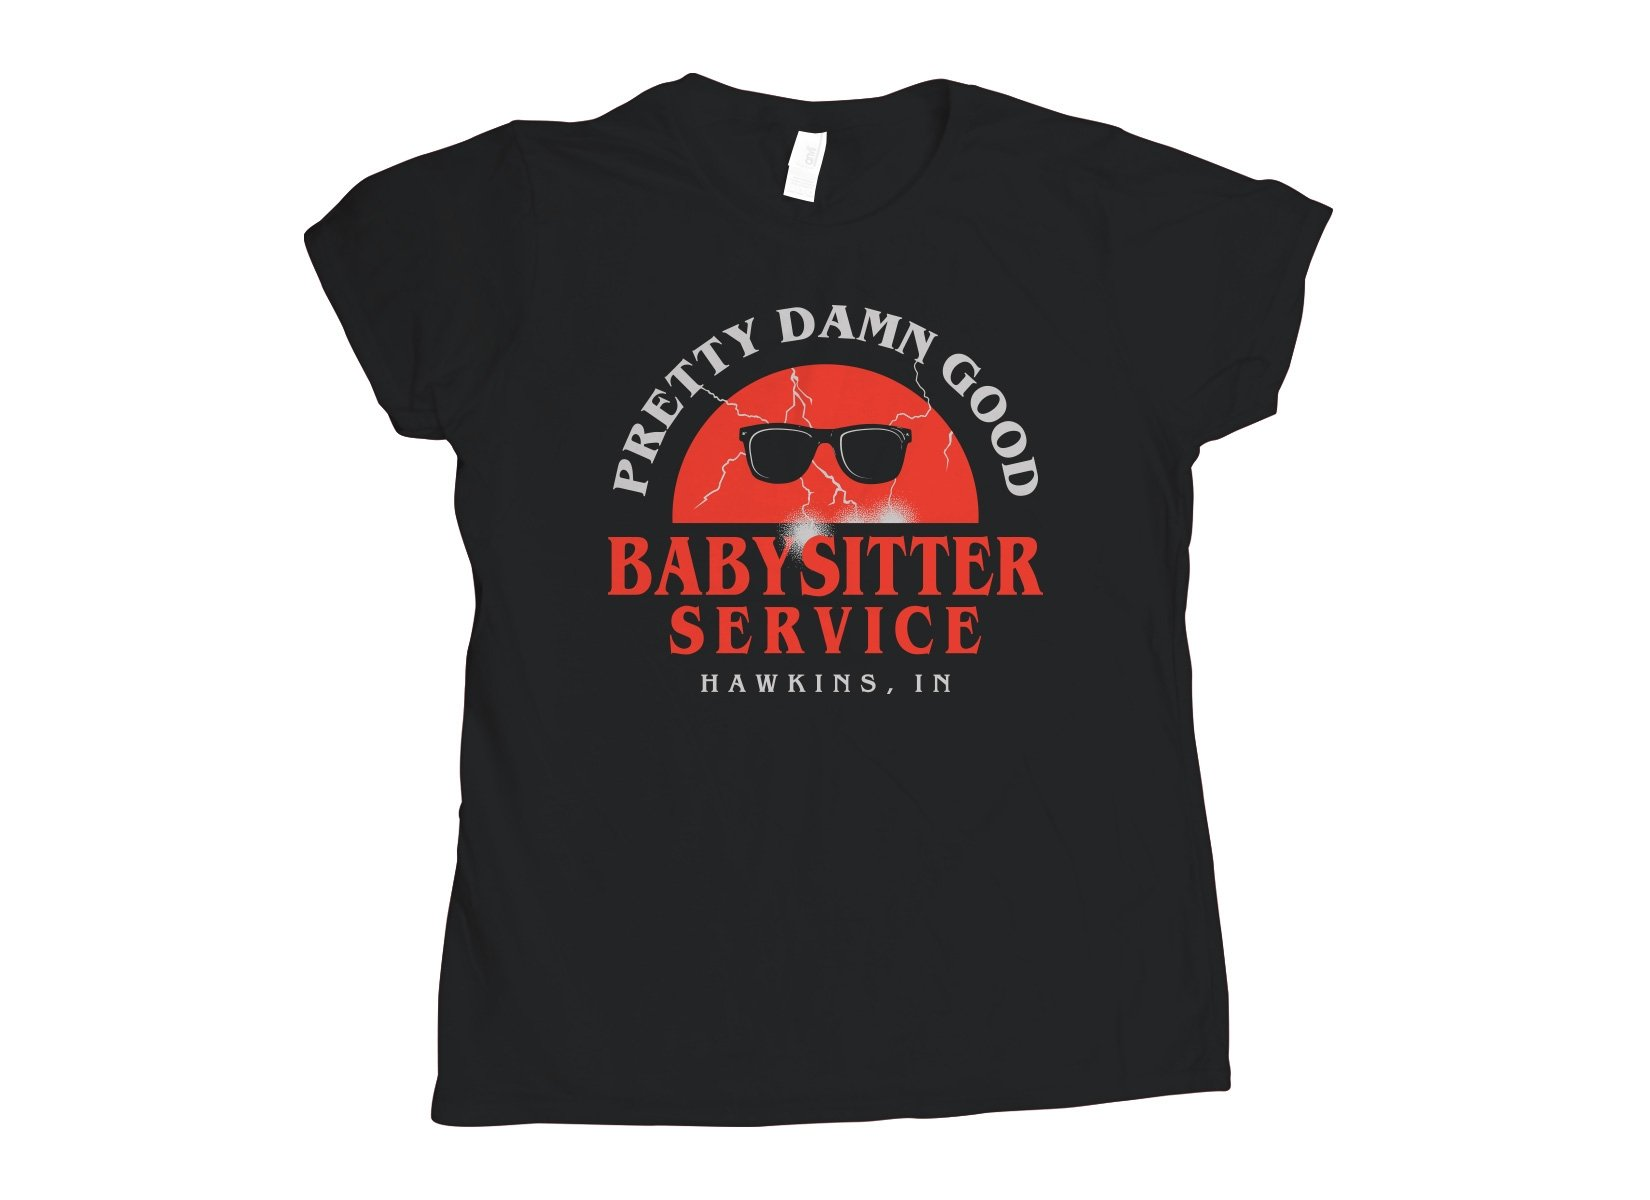 Pretty Damn Good Babysitter Service on Womens T-Shirt